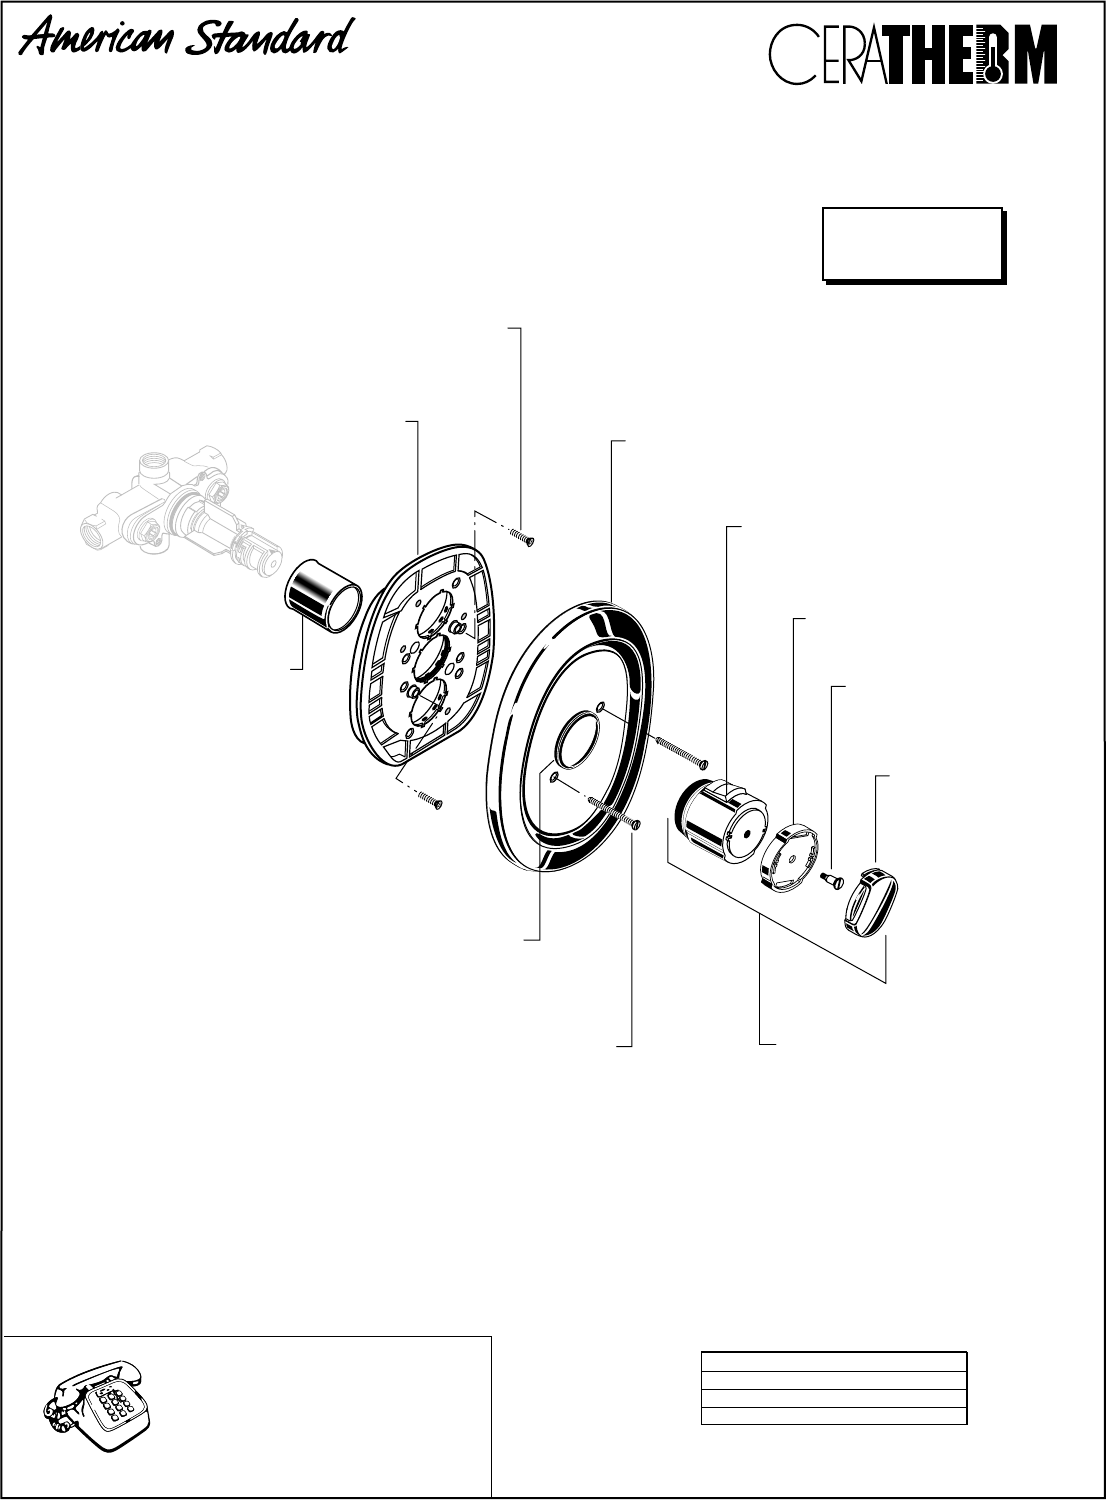 American Standard Thermostat T050110 User Guide